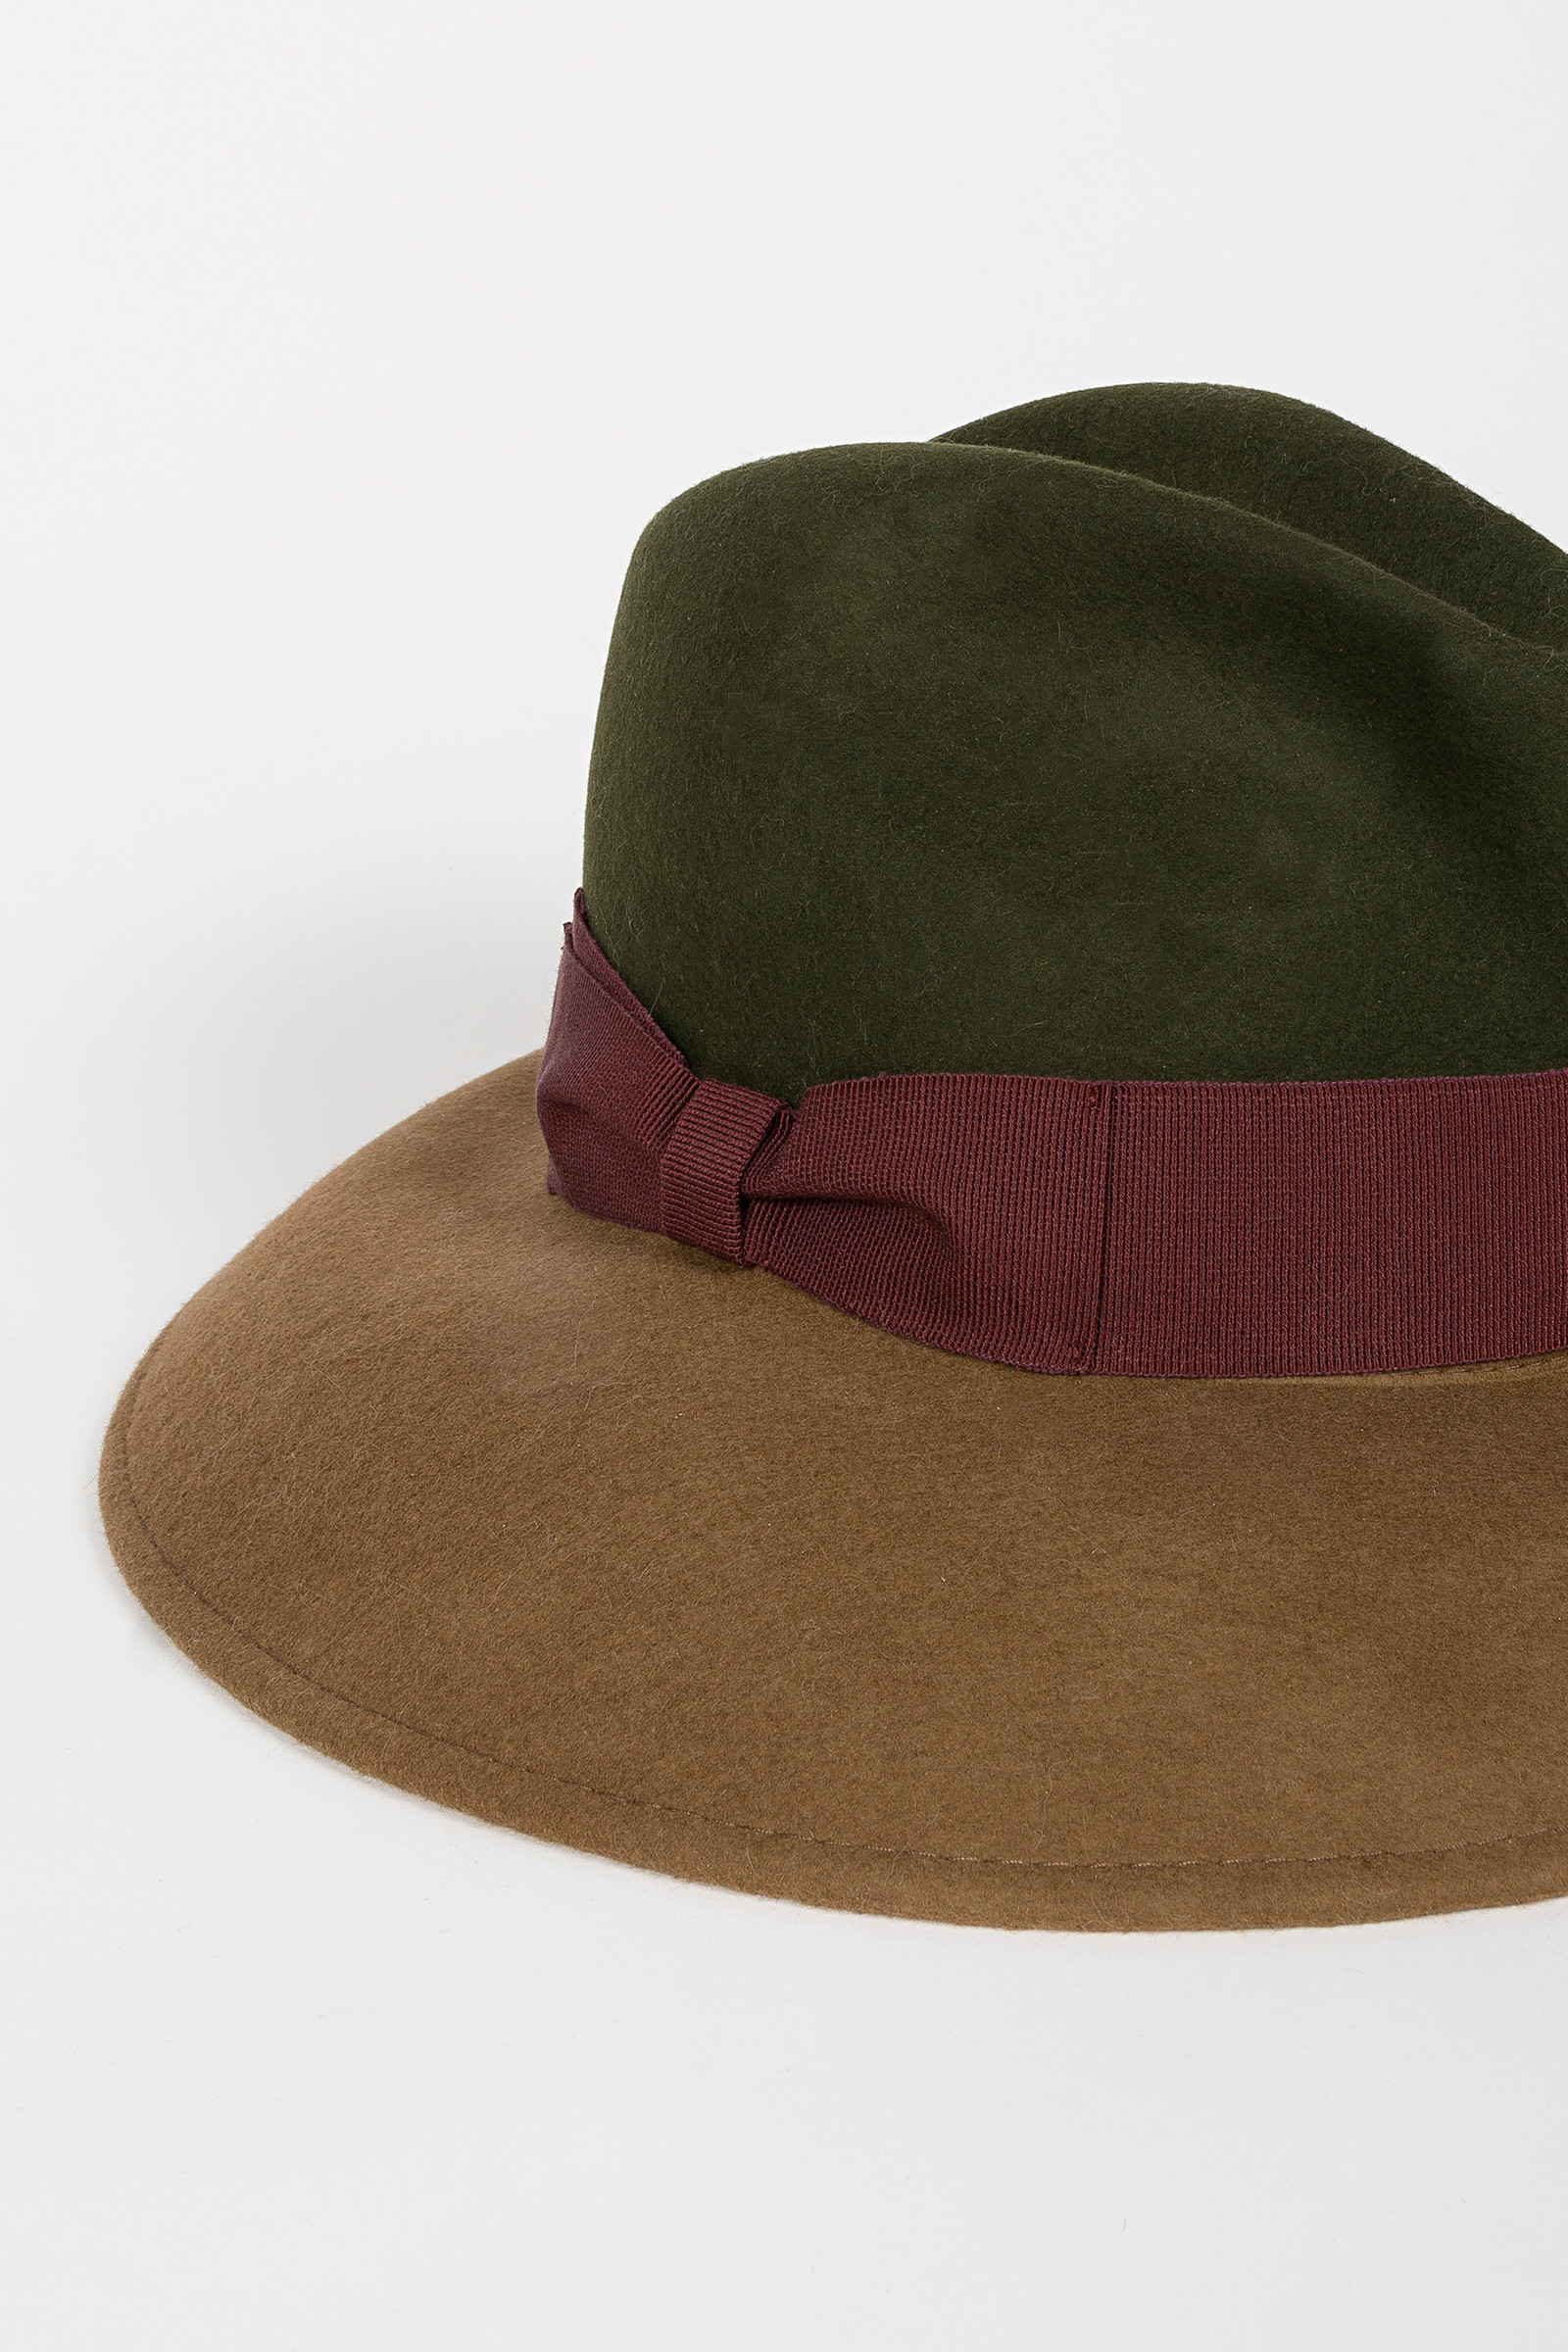 Army Wool Hat detail 20a16ef7e7e0